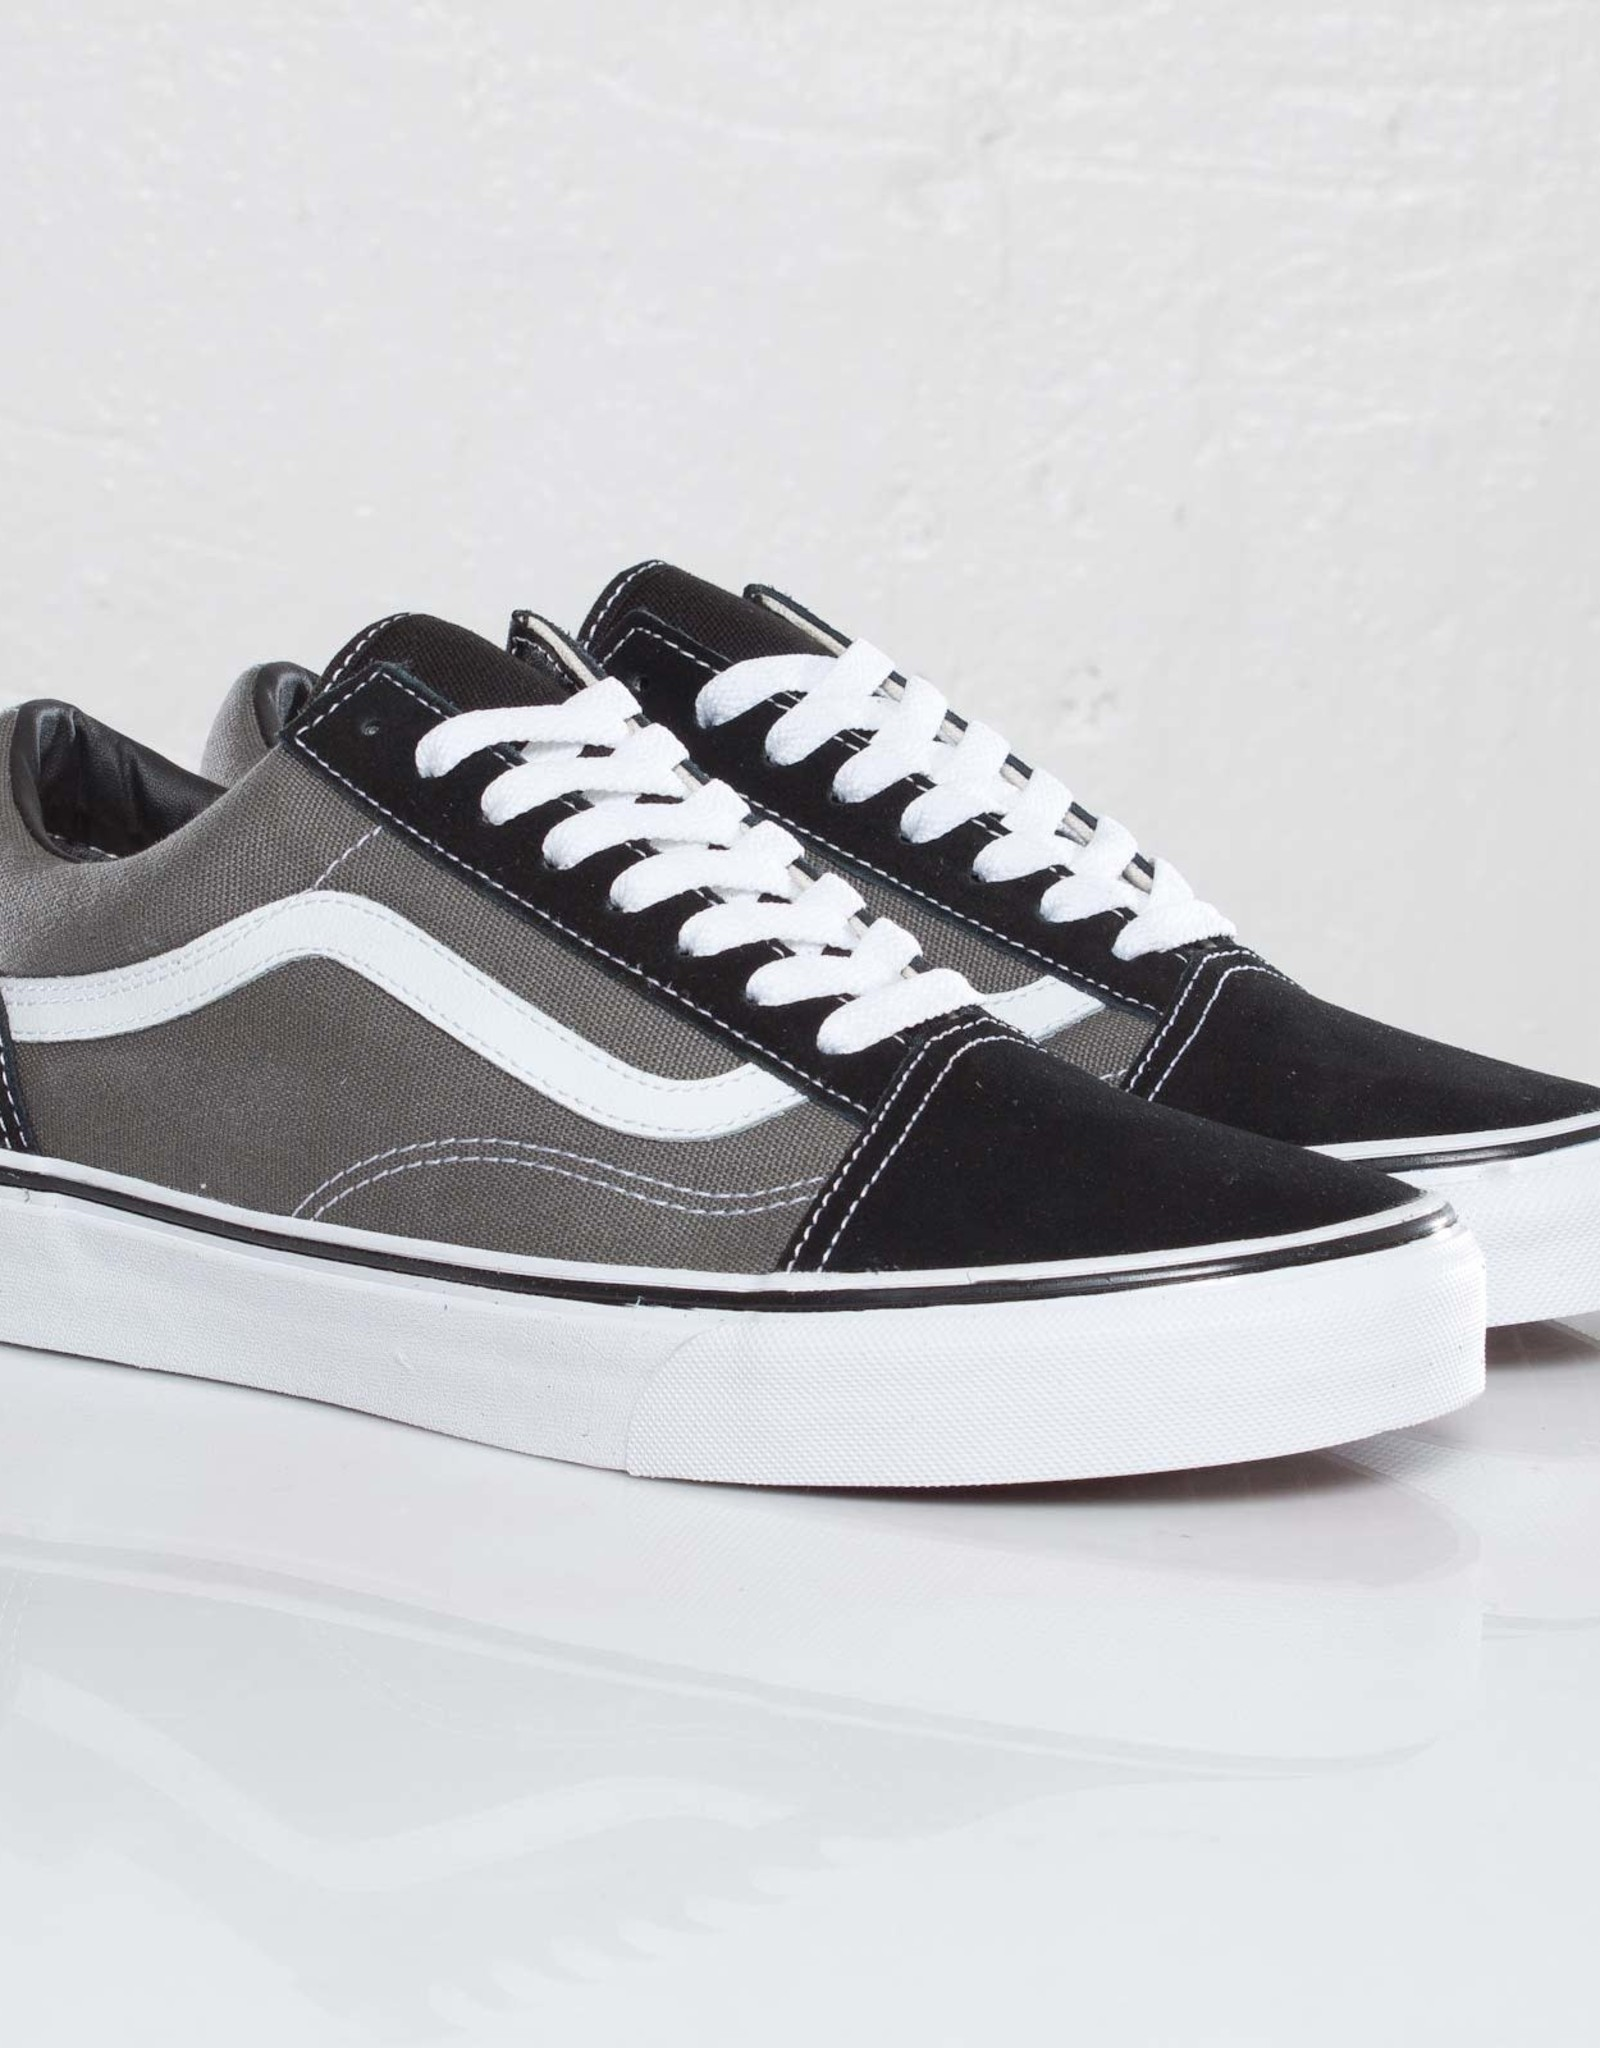 Vans Vans - OLD SKOOL - Blk/Pewter -